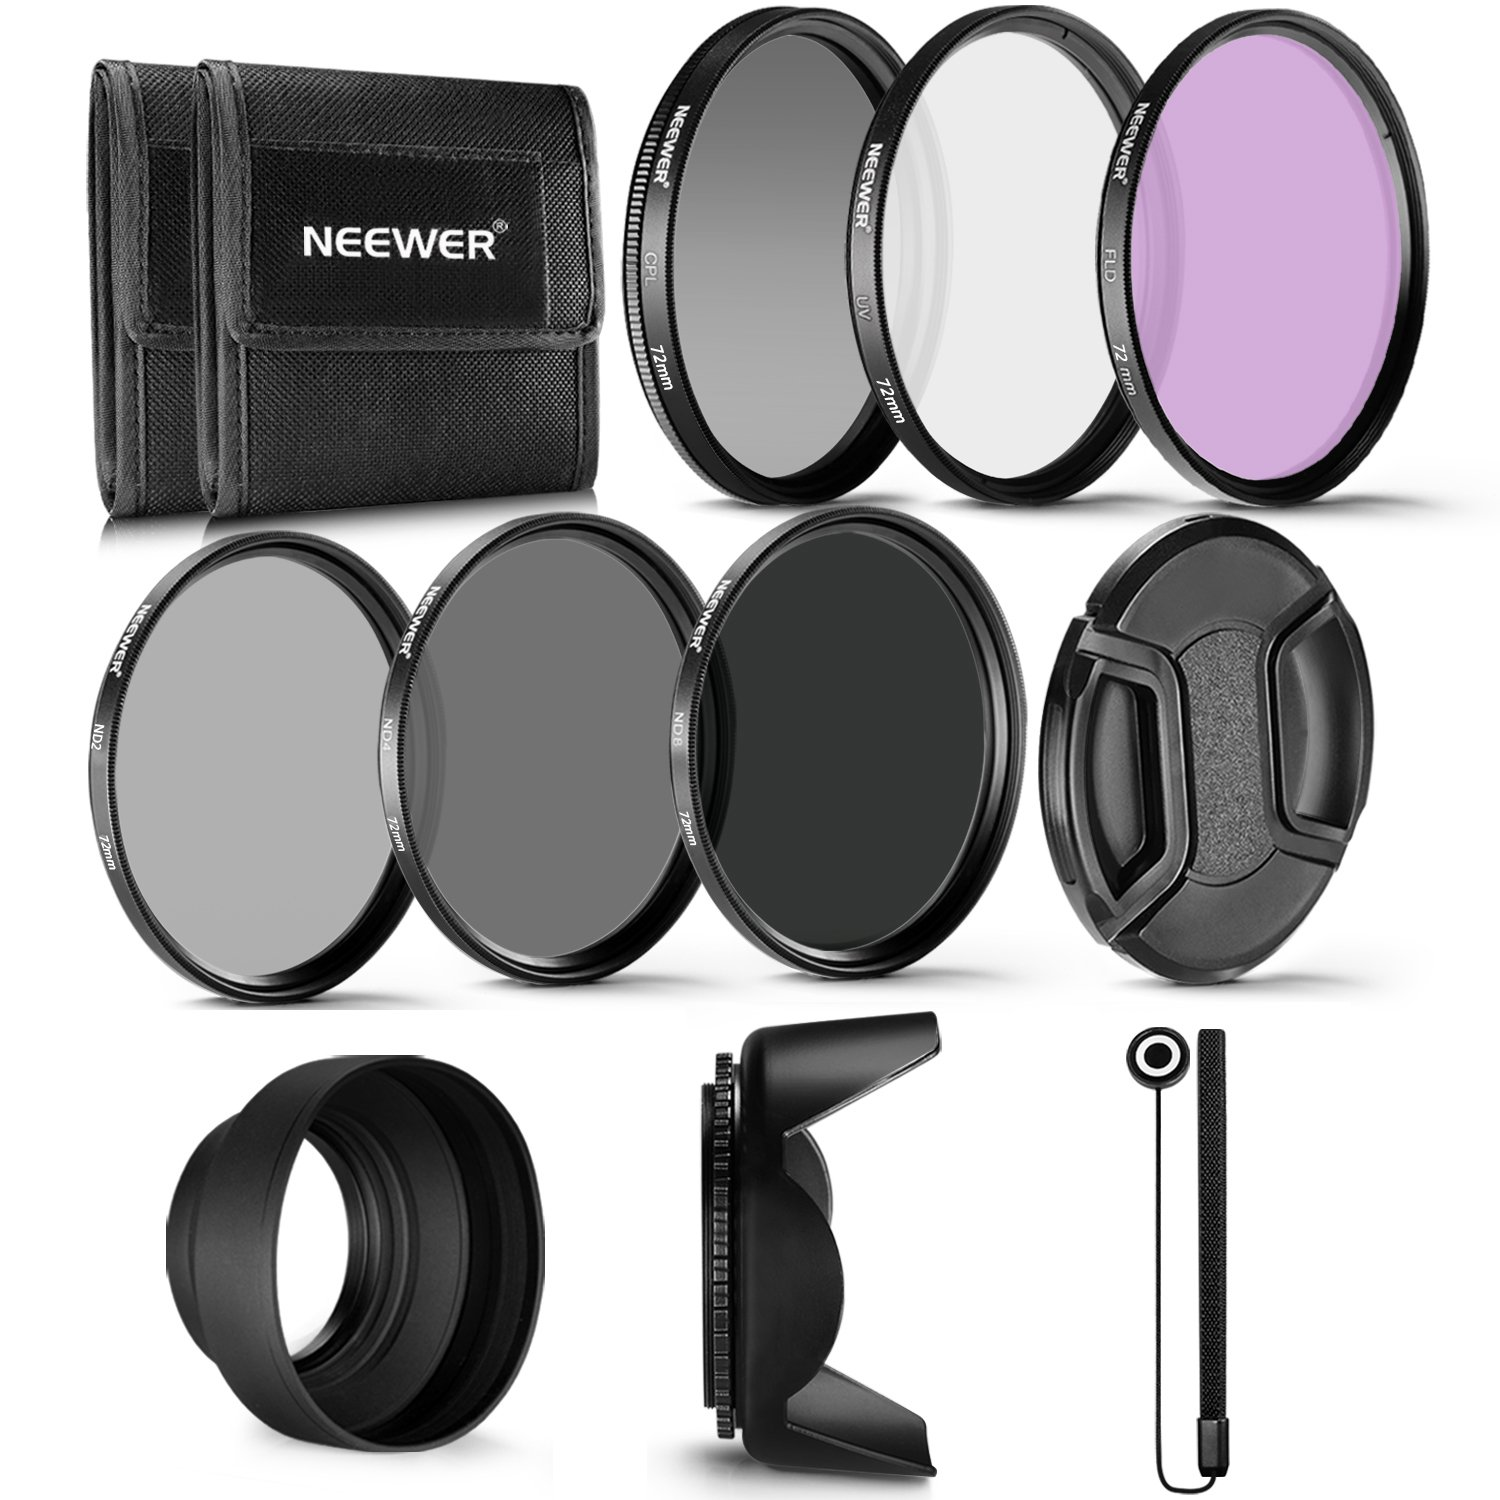 Neewer 62MM Professional UV CPL FLD Lens Filter and ND Neutral Density Filter(ND2, ND4, ND8) Accessory Kit for Pentax (K-30 K-50 K-5 K-5) and Sony Alpha A99 A77 A65 10088185